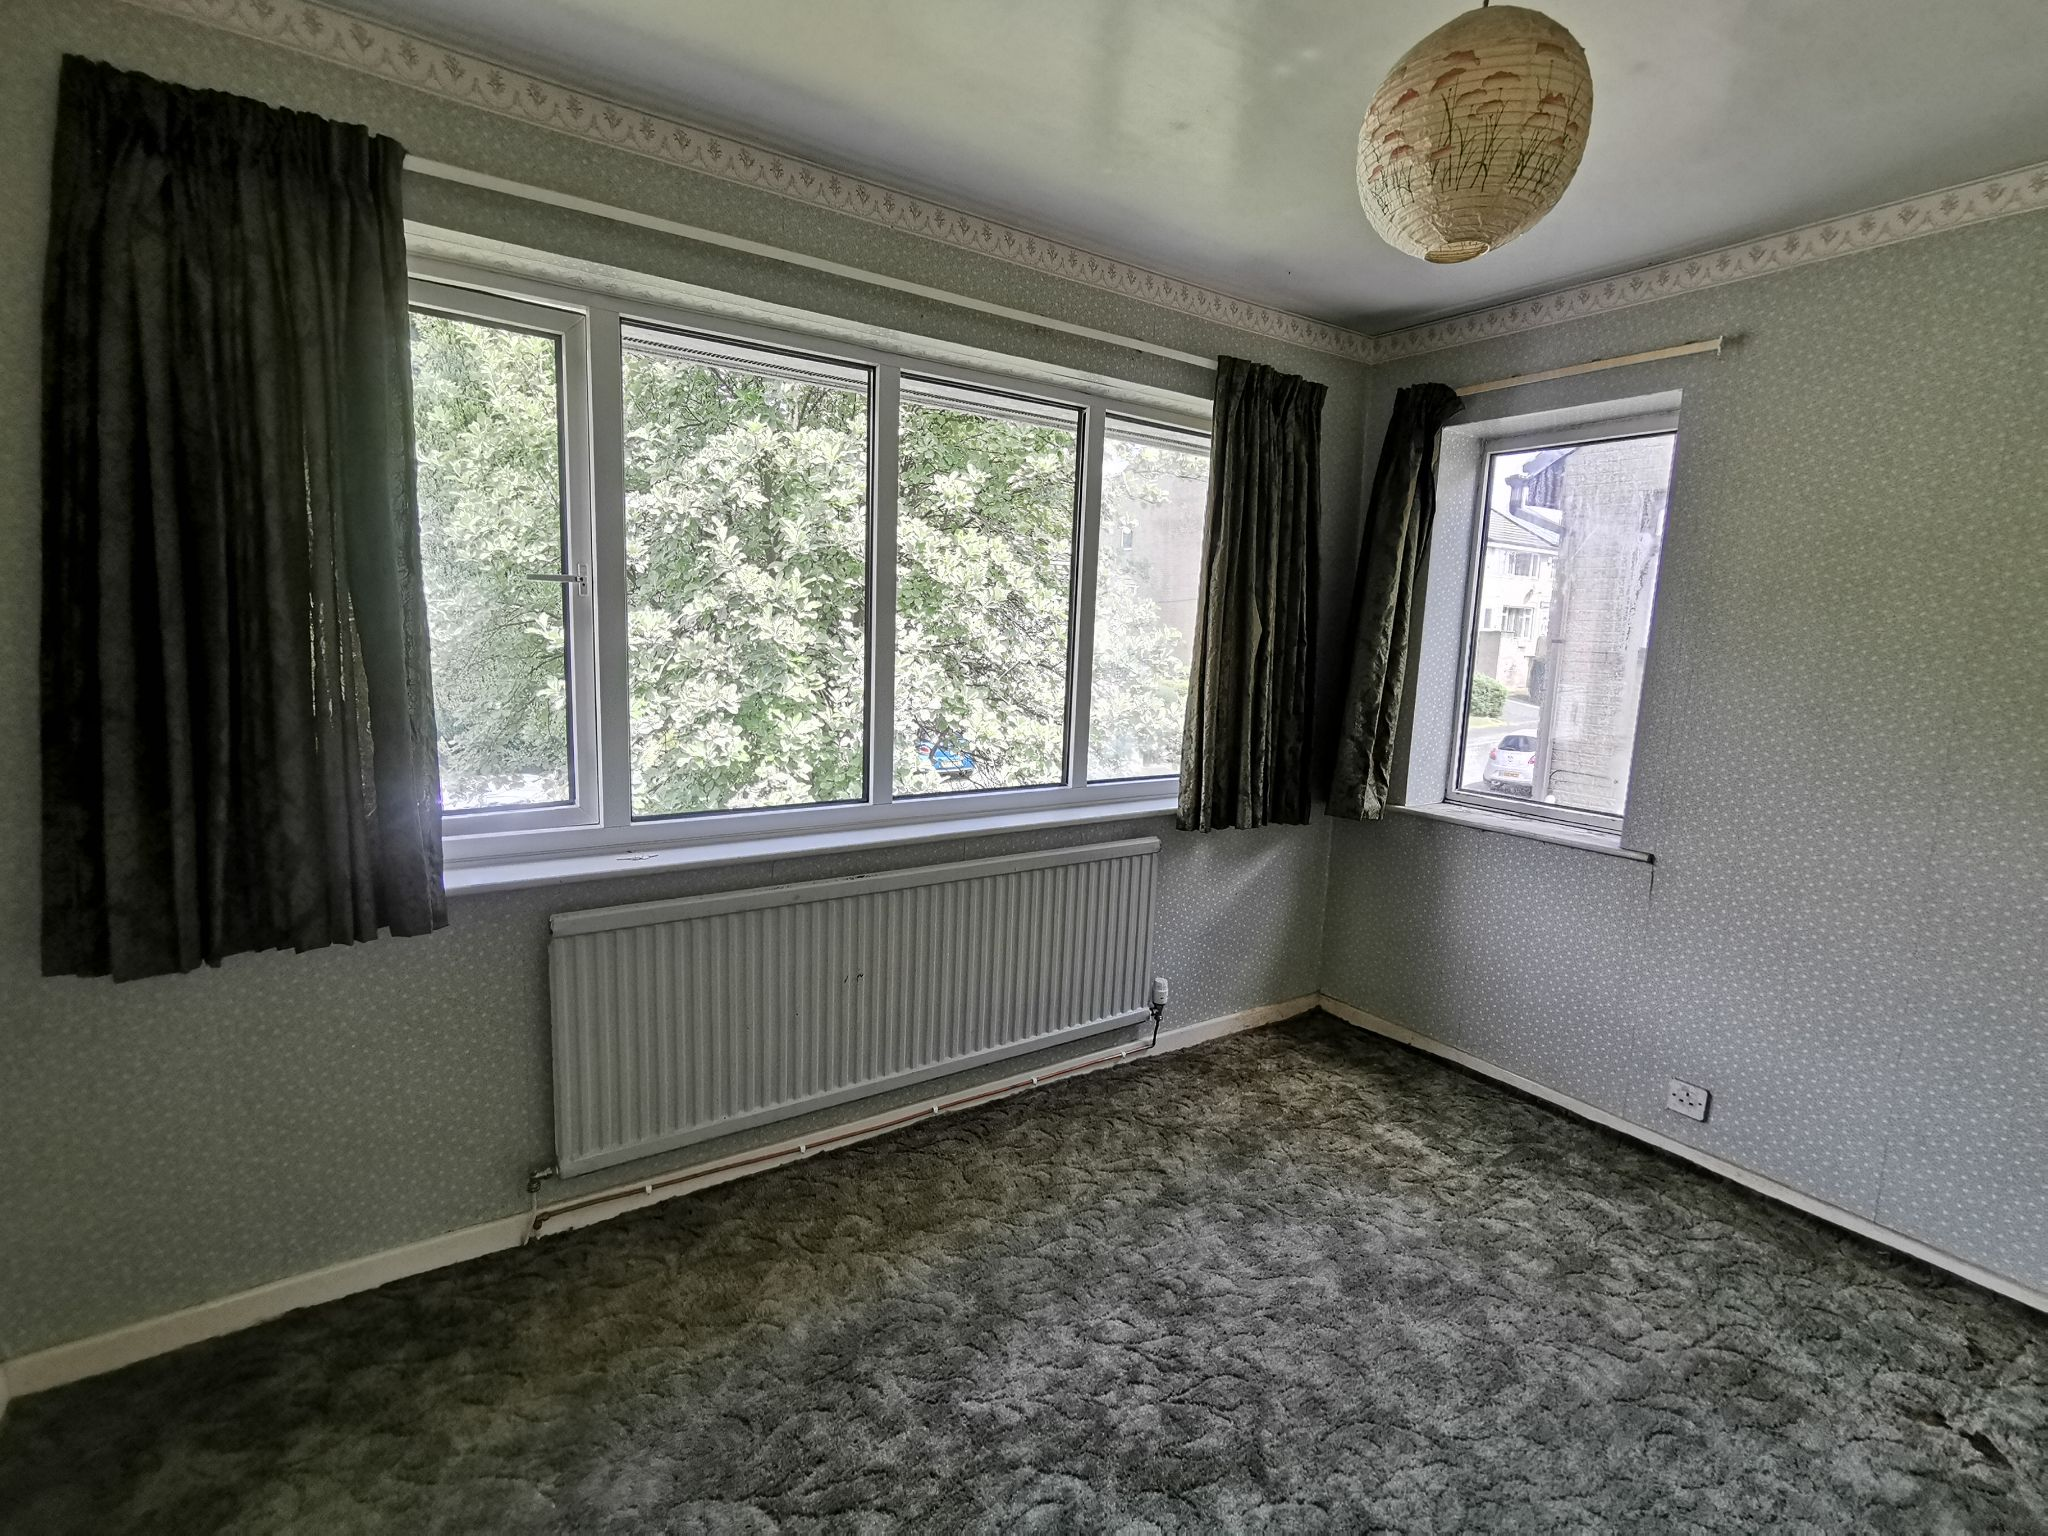 3 bedroom detached house Sold in Bradford - Photograph 11.